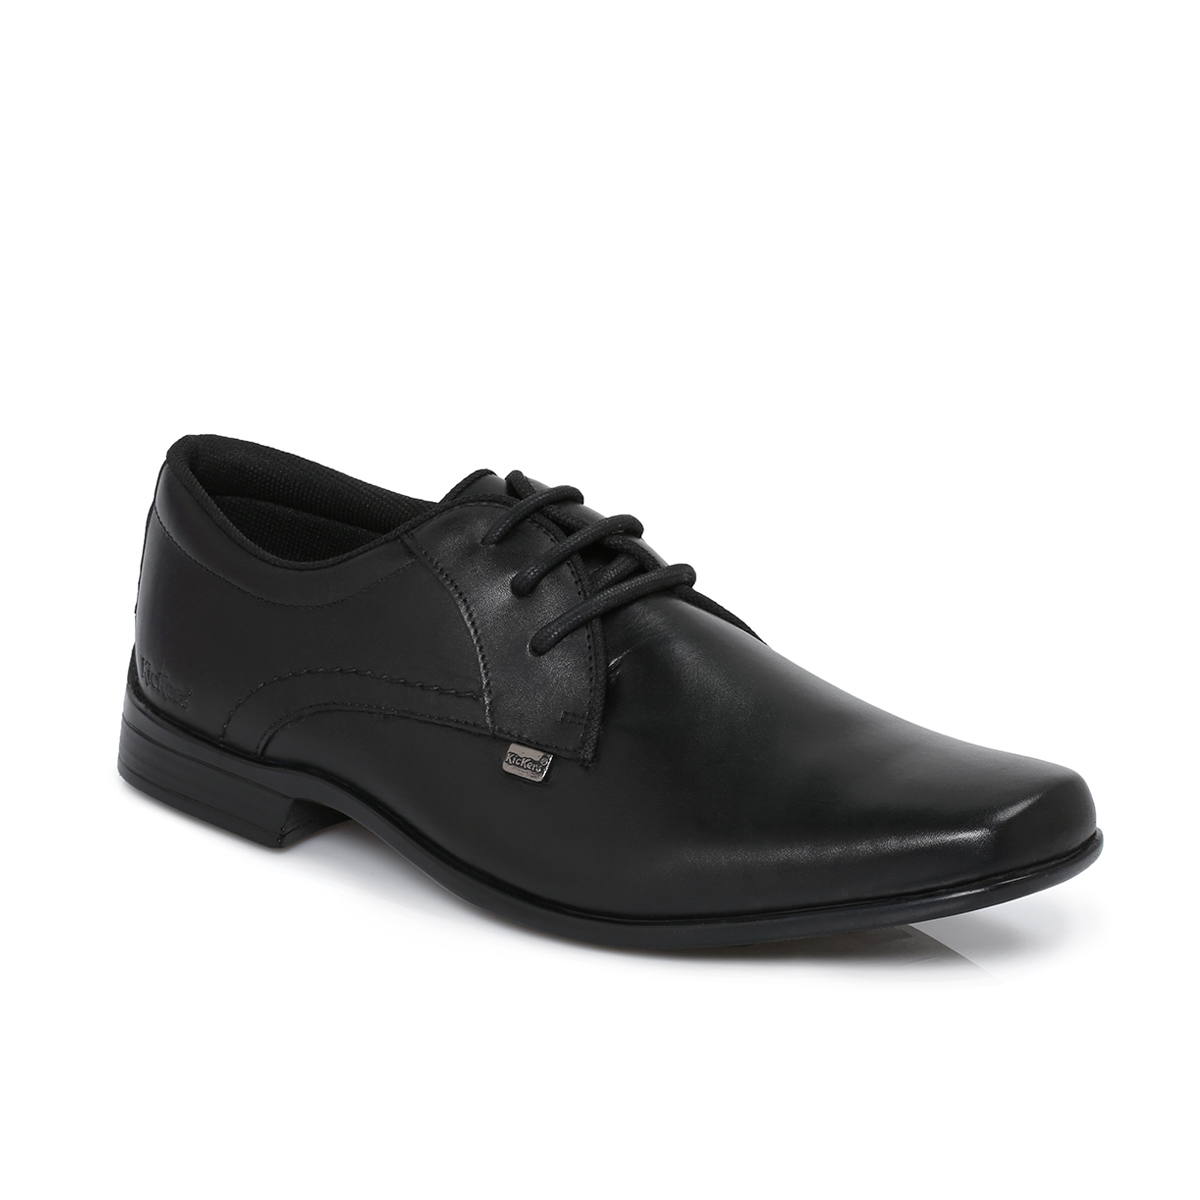 kickers ferock black lace up brogues boys mens school